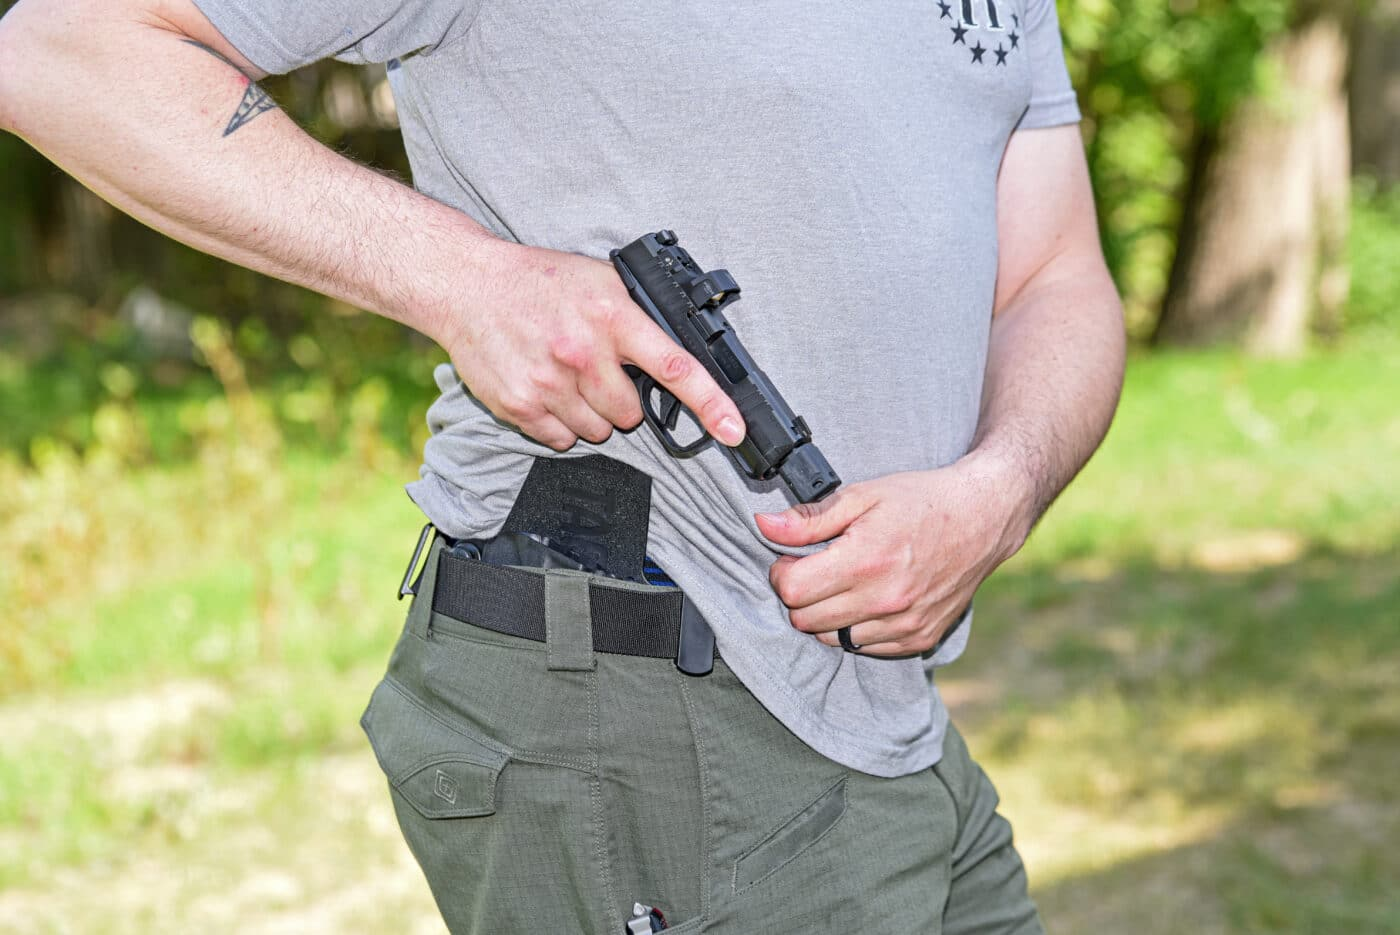 Man drawing a Springfield Hellcat from concealment